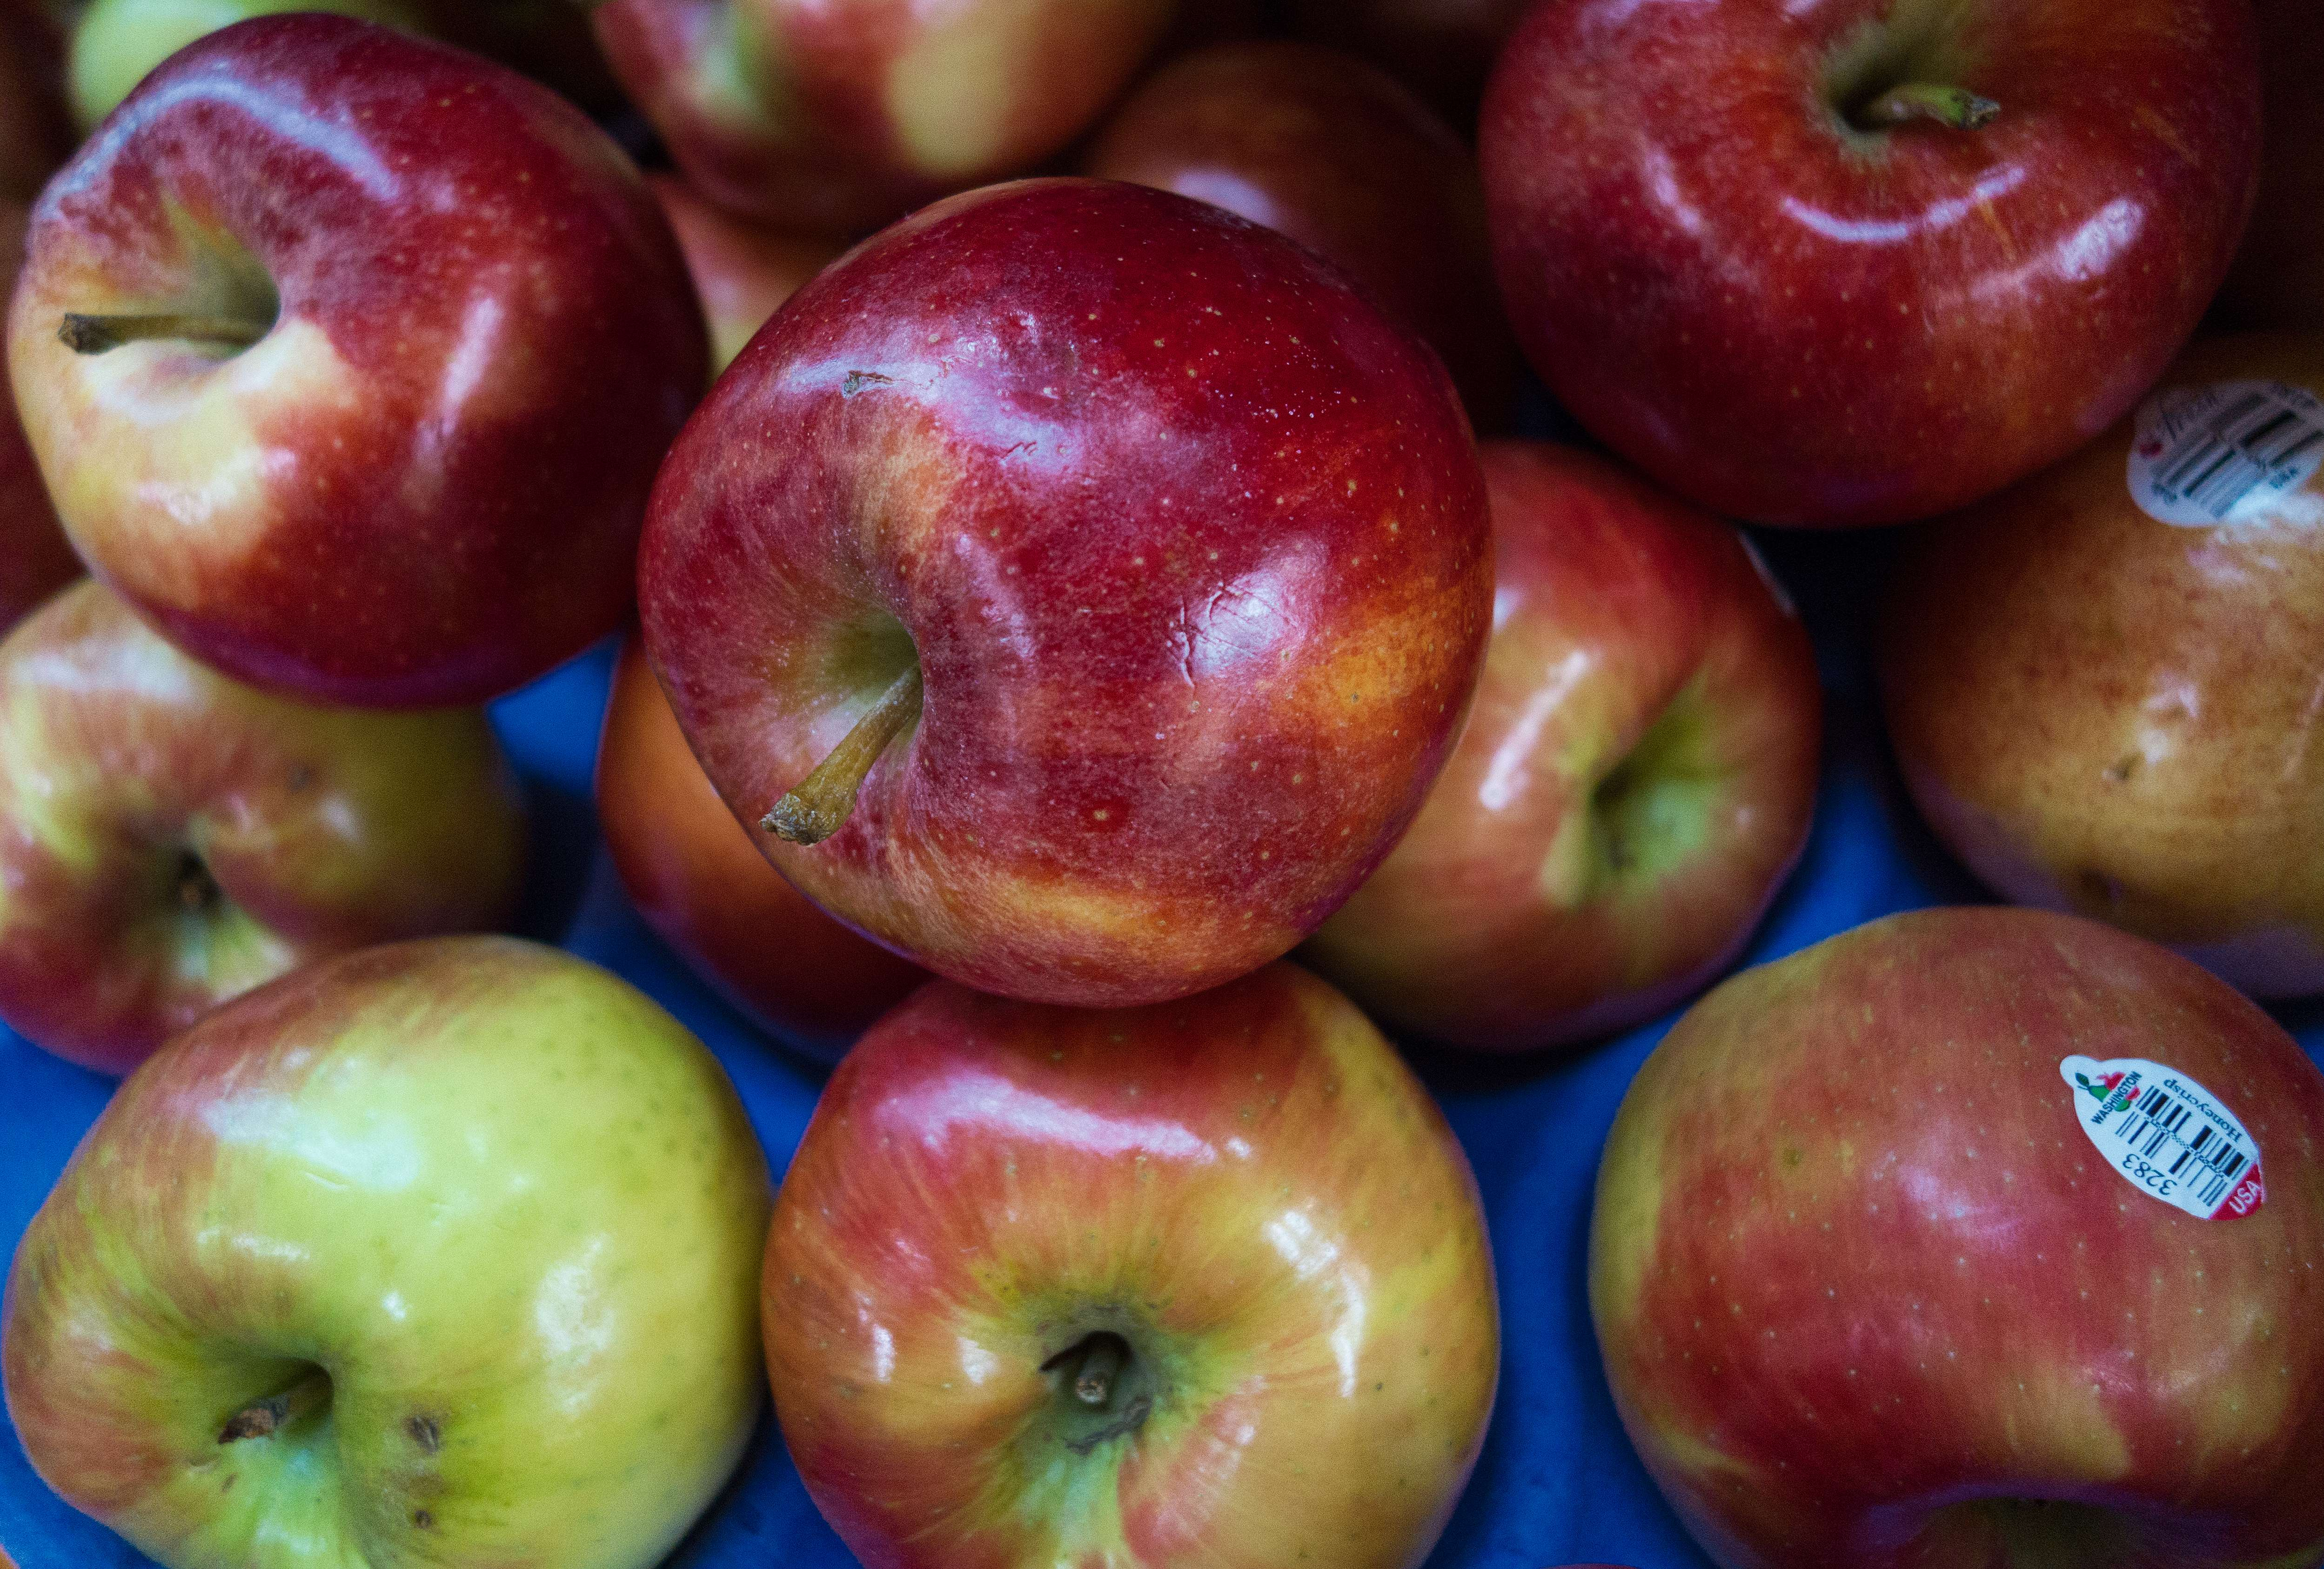 Honeycrisp Apples are seen for sale at the Eastern Market on February 25, 2014, in Washington, DC.